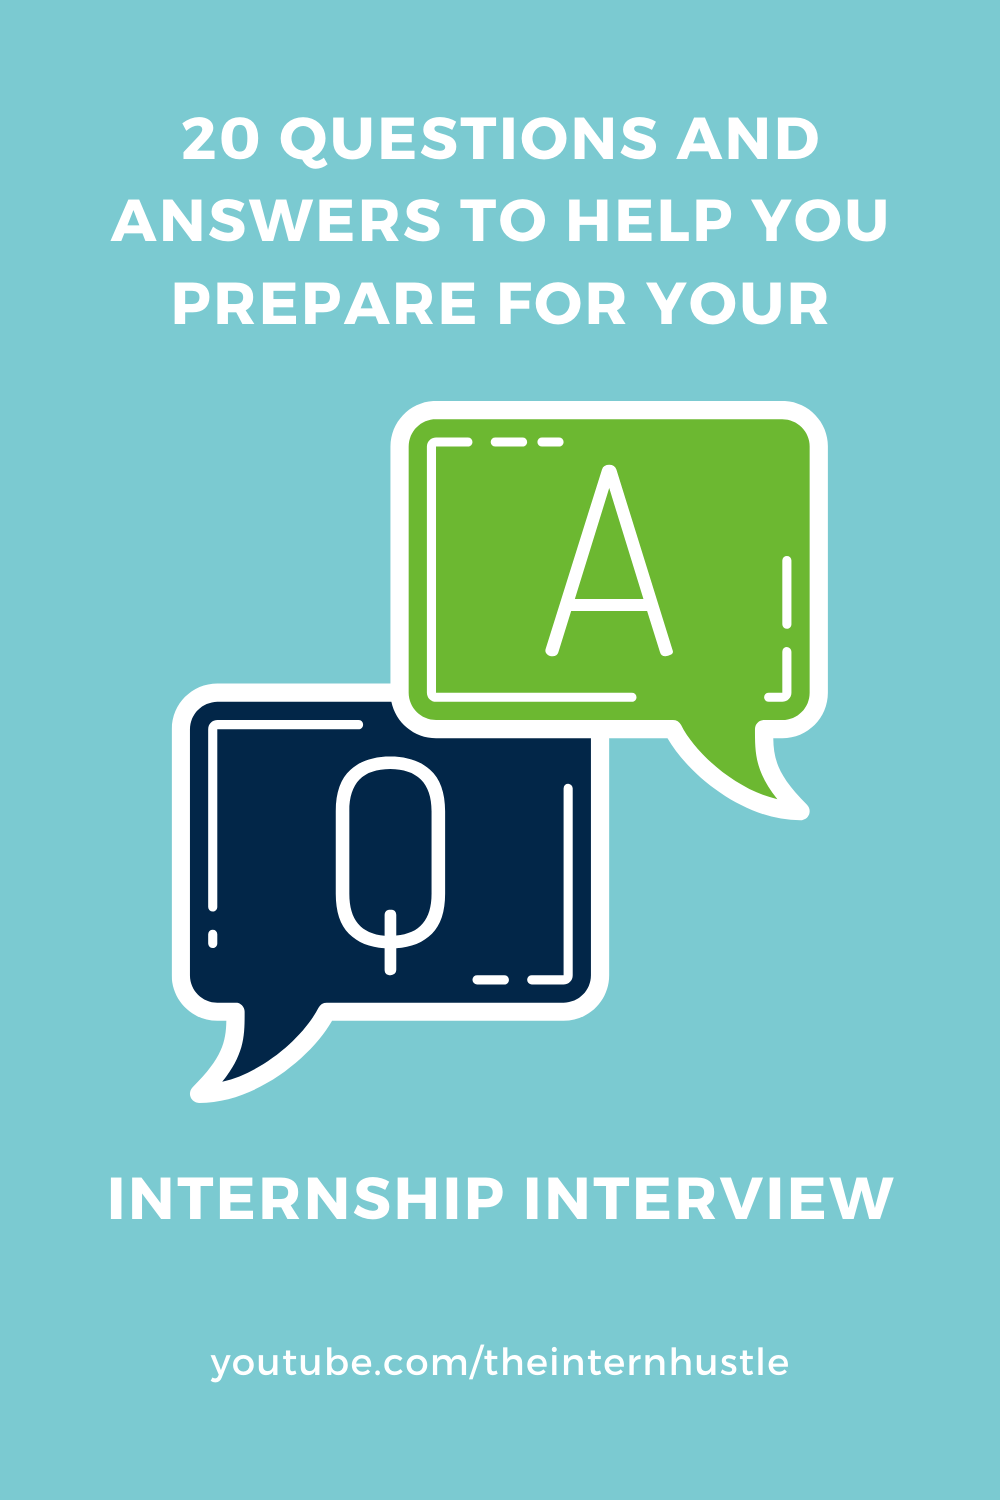 Internship Interview Questions And Answers 20 Examples In 2020 Internship Interview Questions Internship Interviews Interview Questions